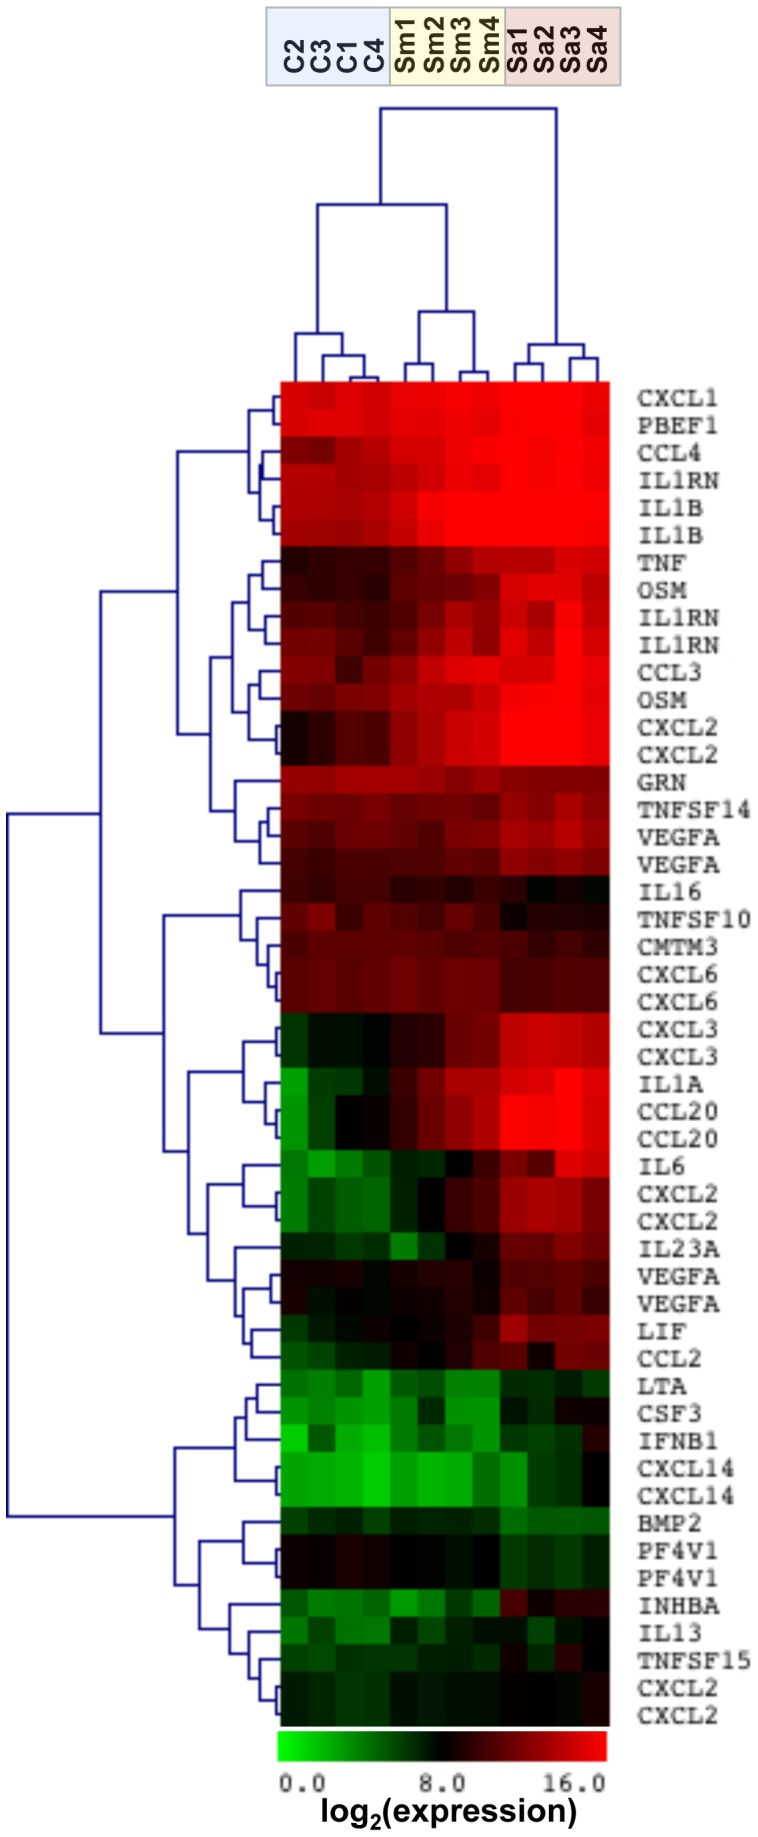 Hierarchical clustering of cytokine and chemokine genes by M. abscessus . Neutrophils were stimulated with M. abscessus (Sm; yellow shading ), or S. aureus (Sa; red shading ) for 2 hours, and gene expression was determined compared to non-stimulated neutrophils (C; blue shading ). Tree spacing indicates linkage distance. Highly expressed ( red ) and low expressed ( green ) genes are indicated from 4 different neutrophil donors.